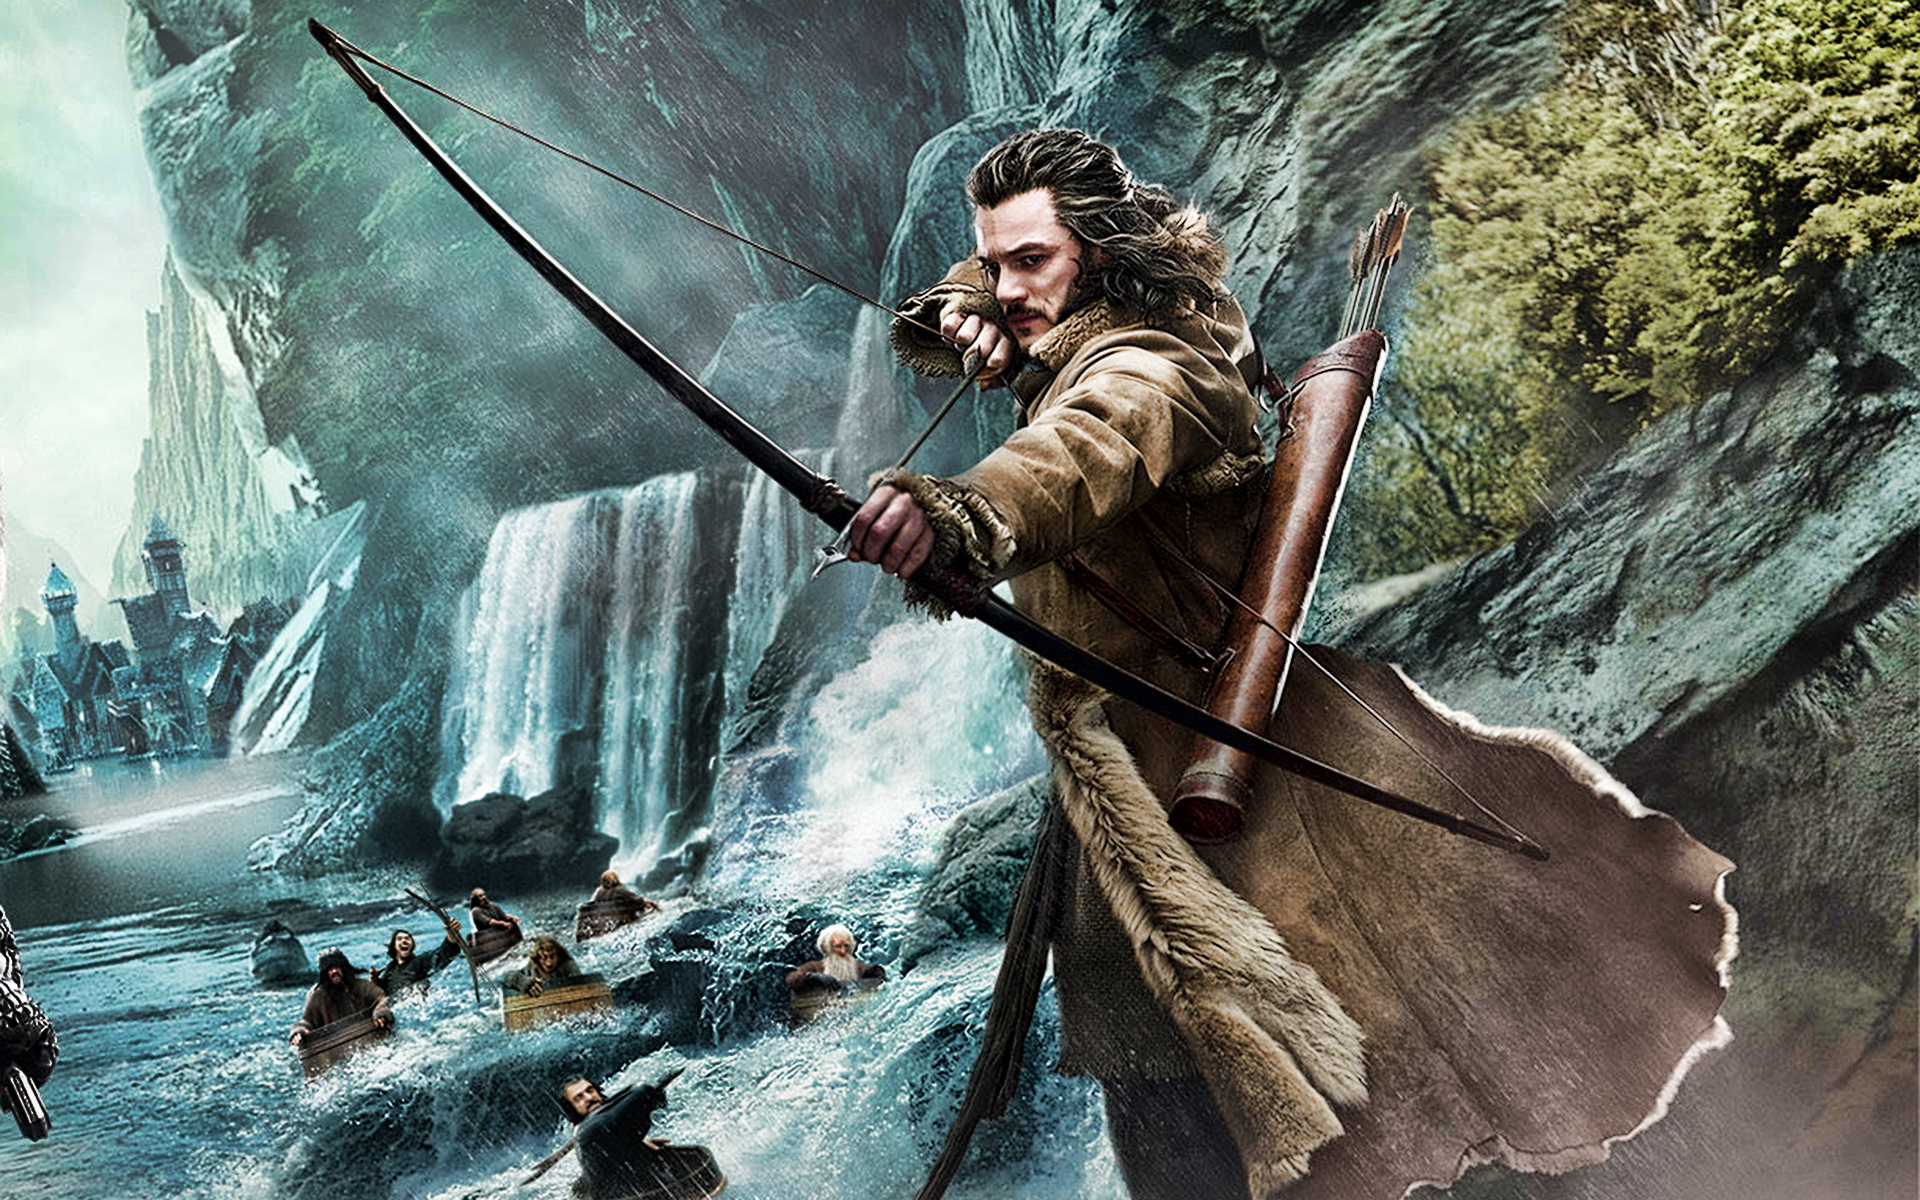 The Hobbit Desolation Of Smaug 28 Wallpaper   Trendy Wallpapers 1920x1200